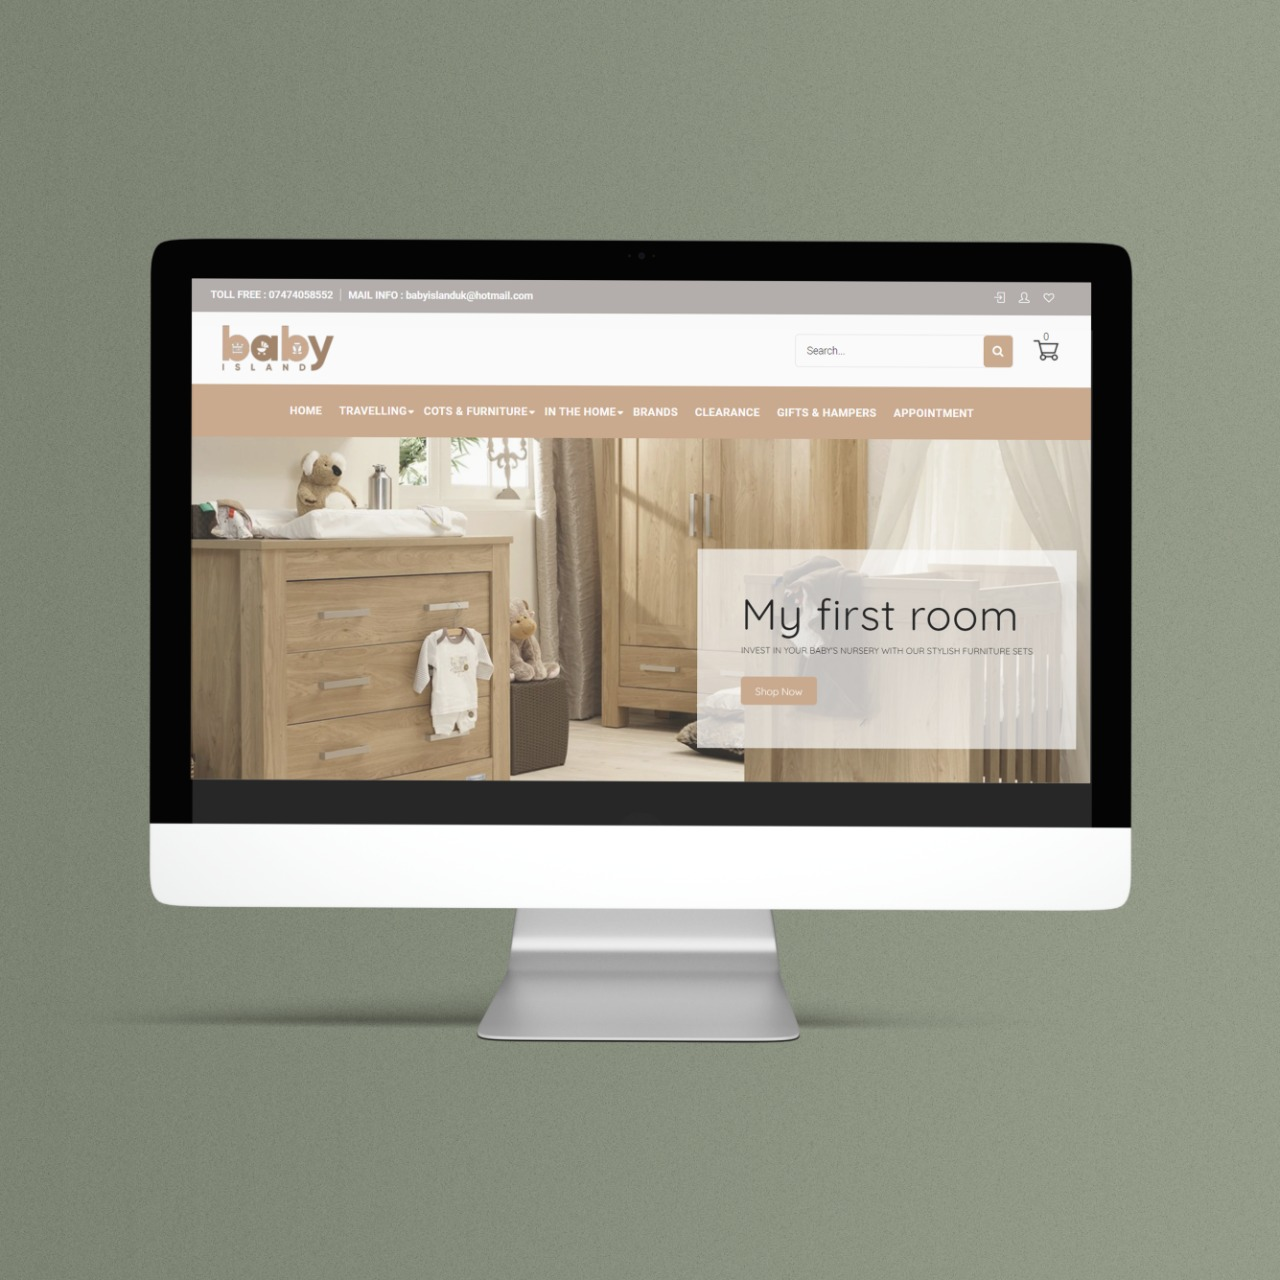 Shopify Website Design and Development for Baby Island Store in London